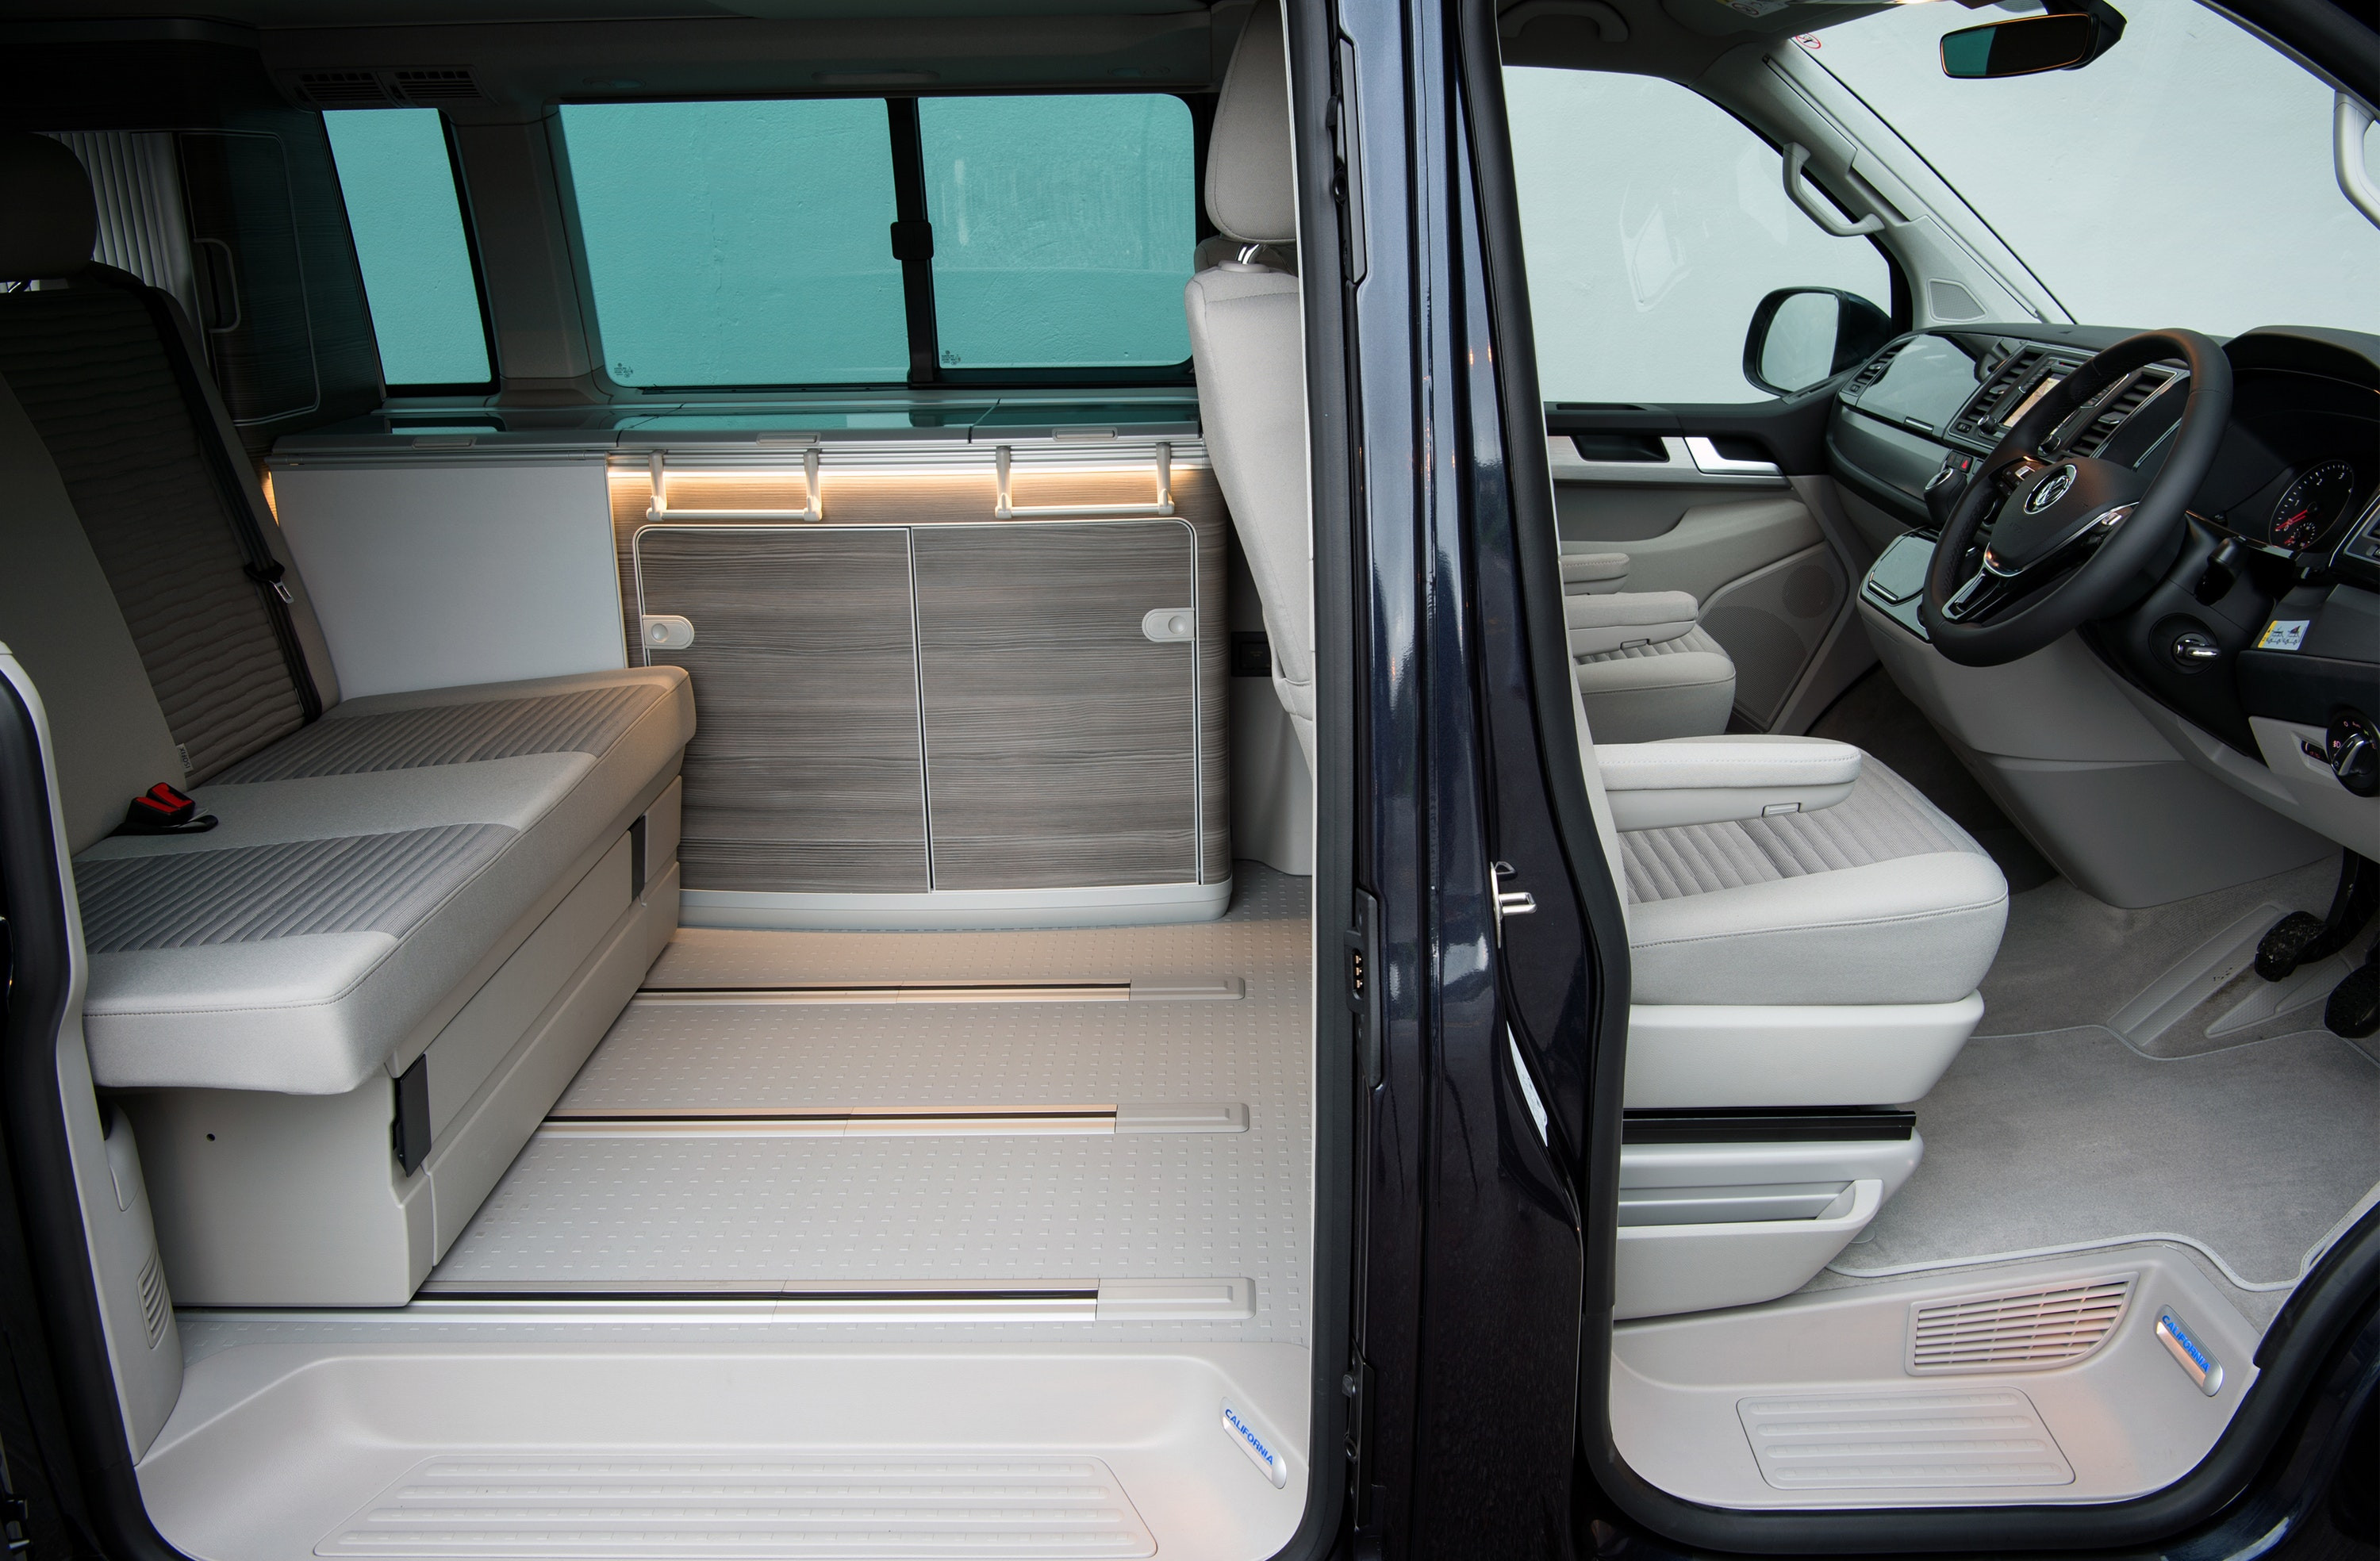 VW California Ocean campervan interior seats